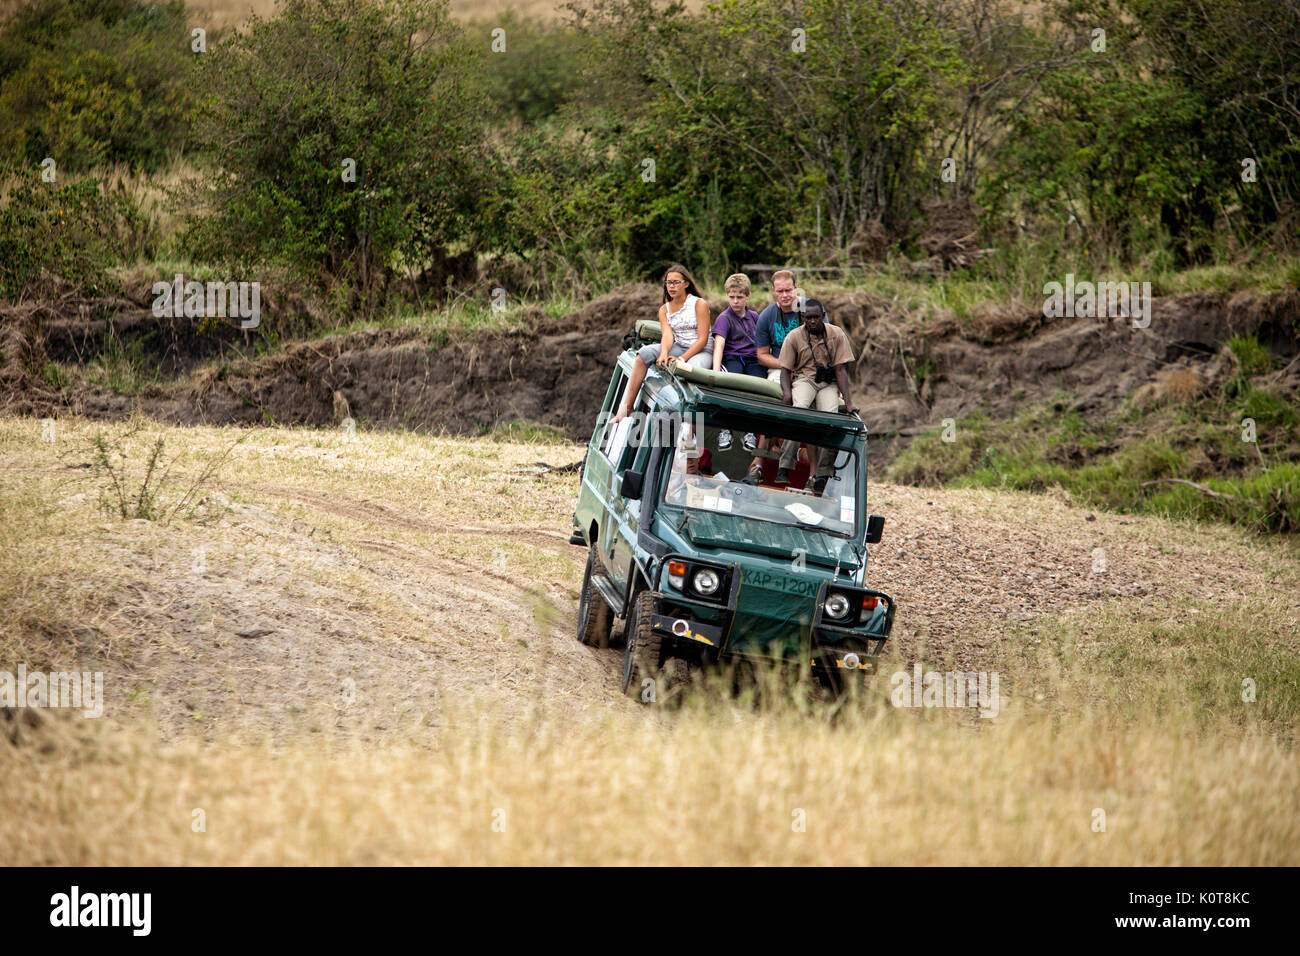 Tour truck filled with tourists driving through the Masai Mara in search of the big 5 game. - Stock Image